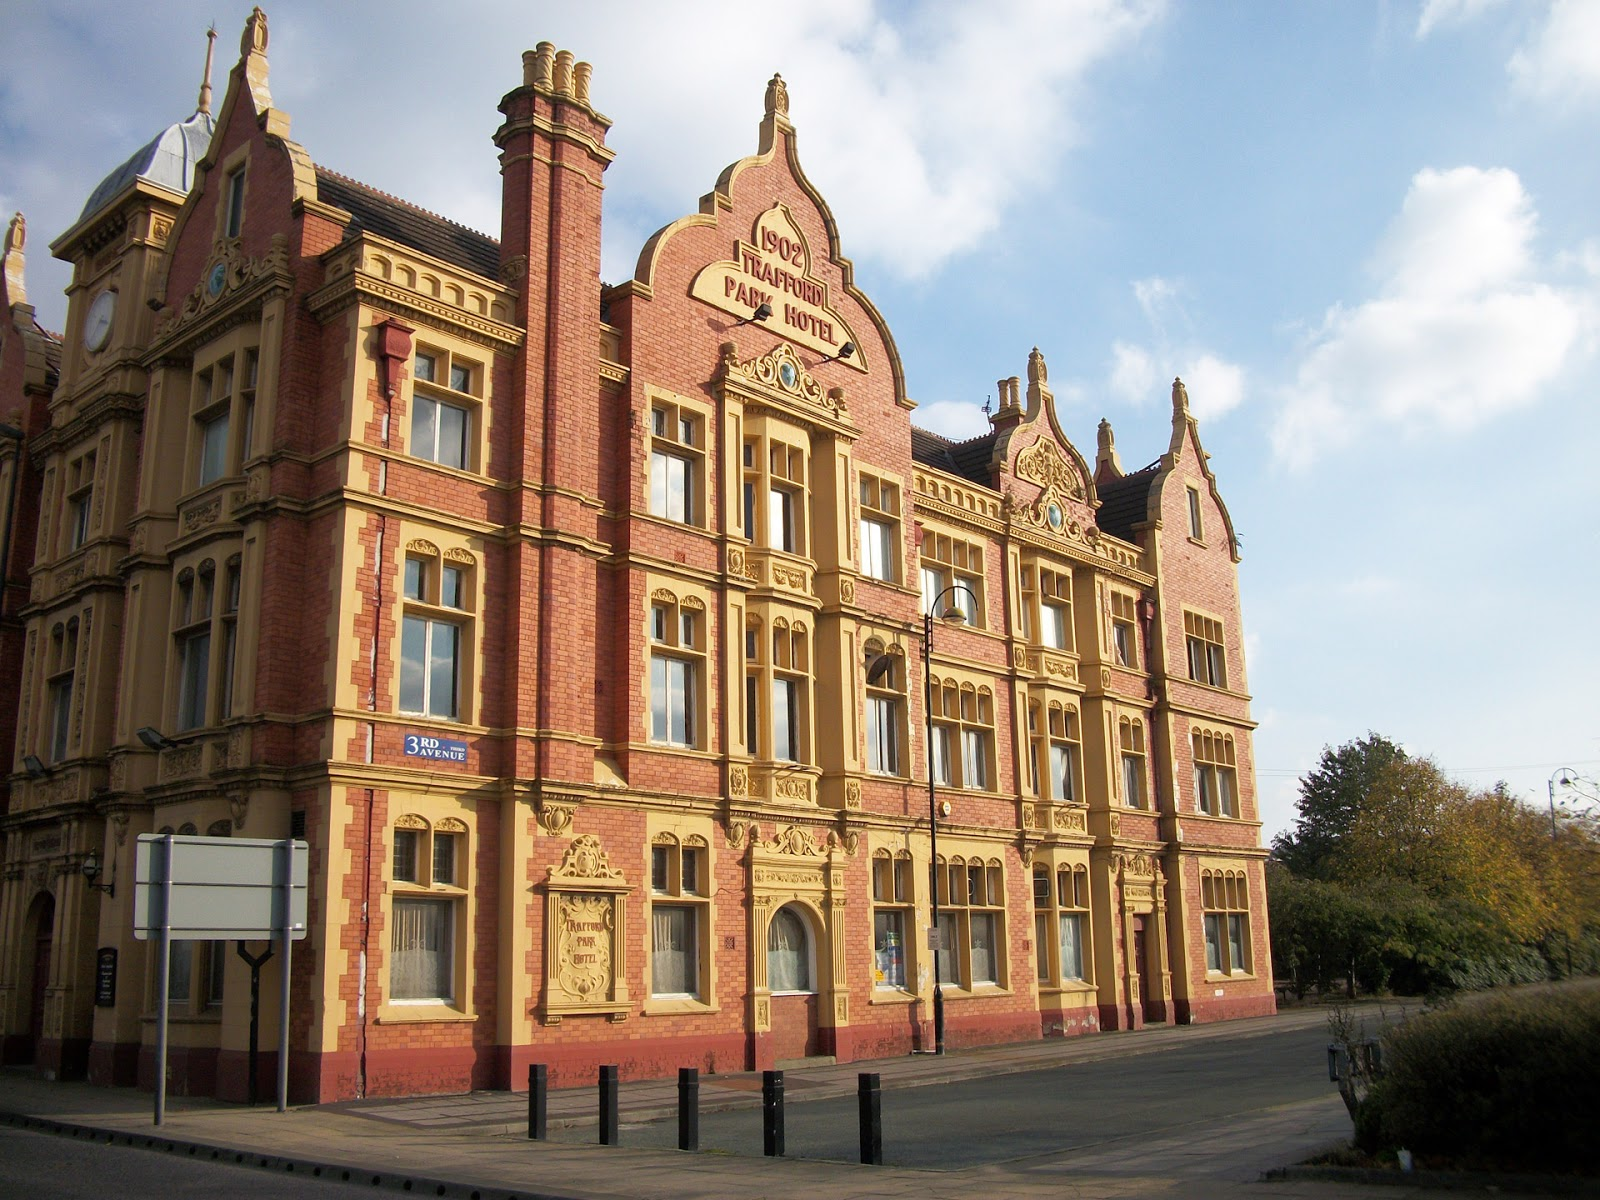 Pubs of Manchester: Trafford Park Hotel, Ashburton Road / Village Way